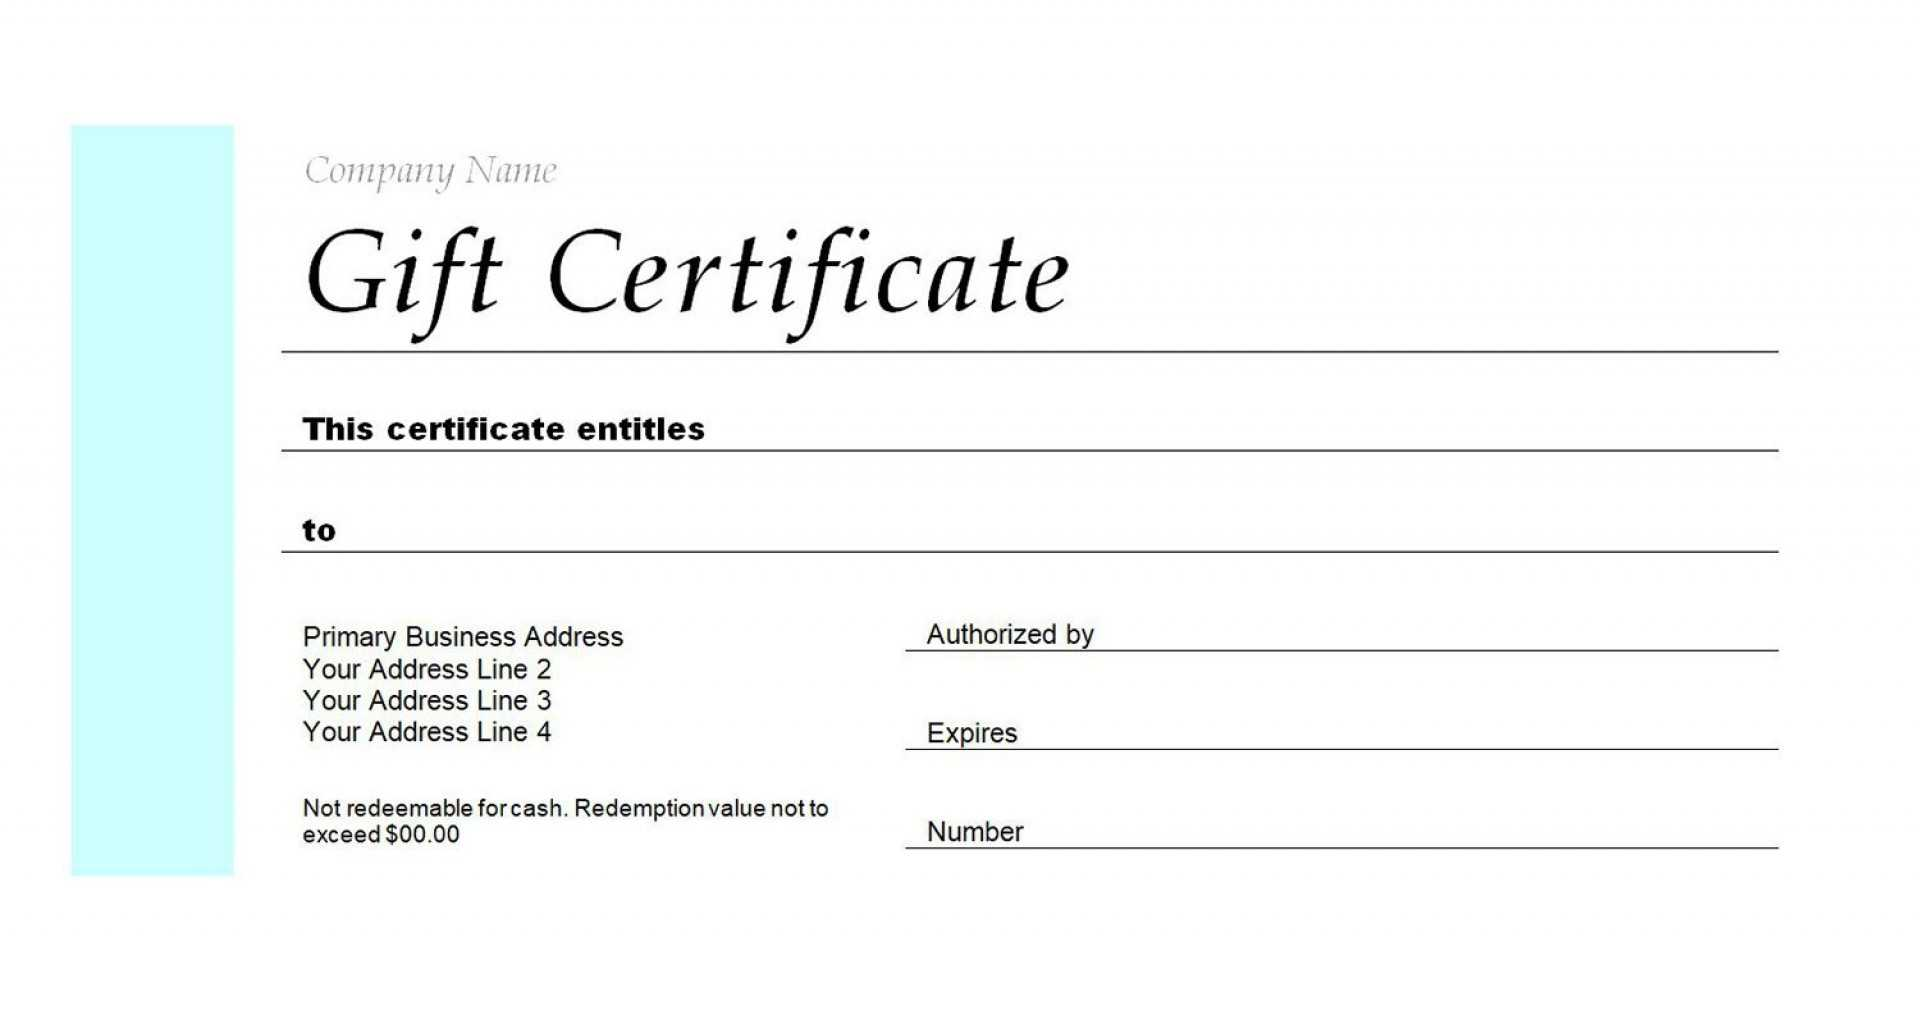 004 Gift Blank Certificate Template Astounding Ideas Pertaining To Company Gift Certificate Template